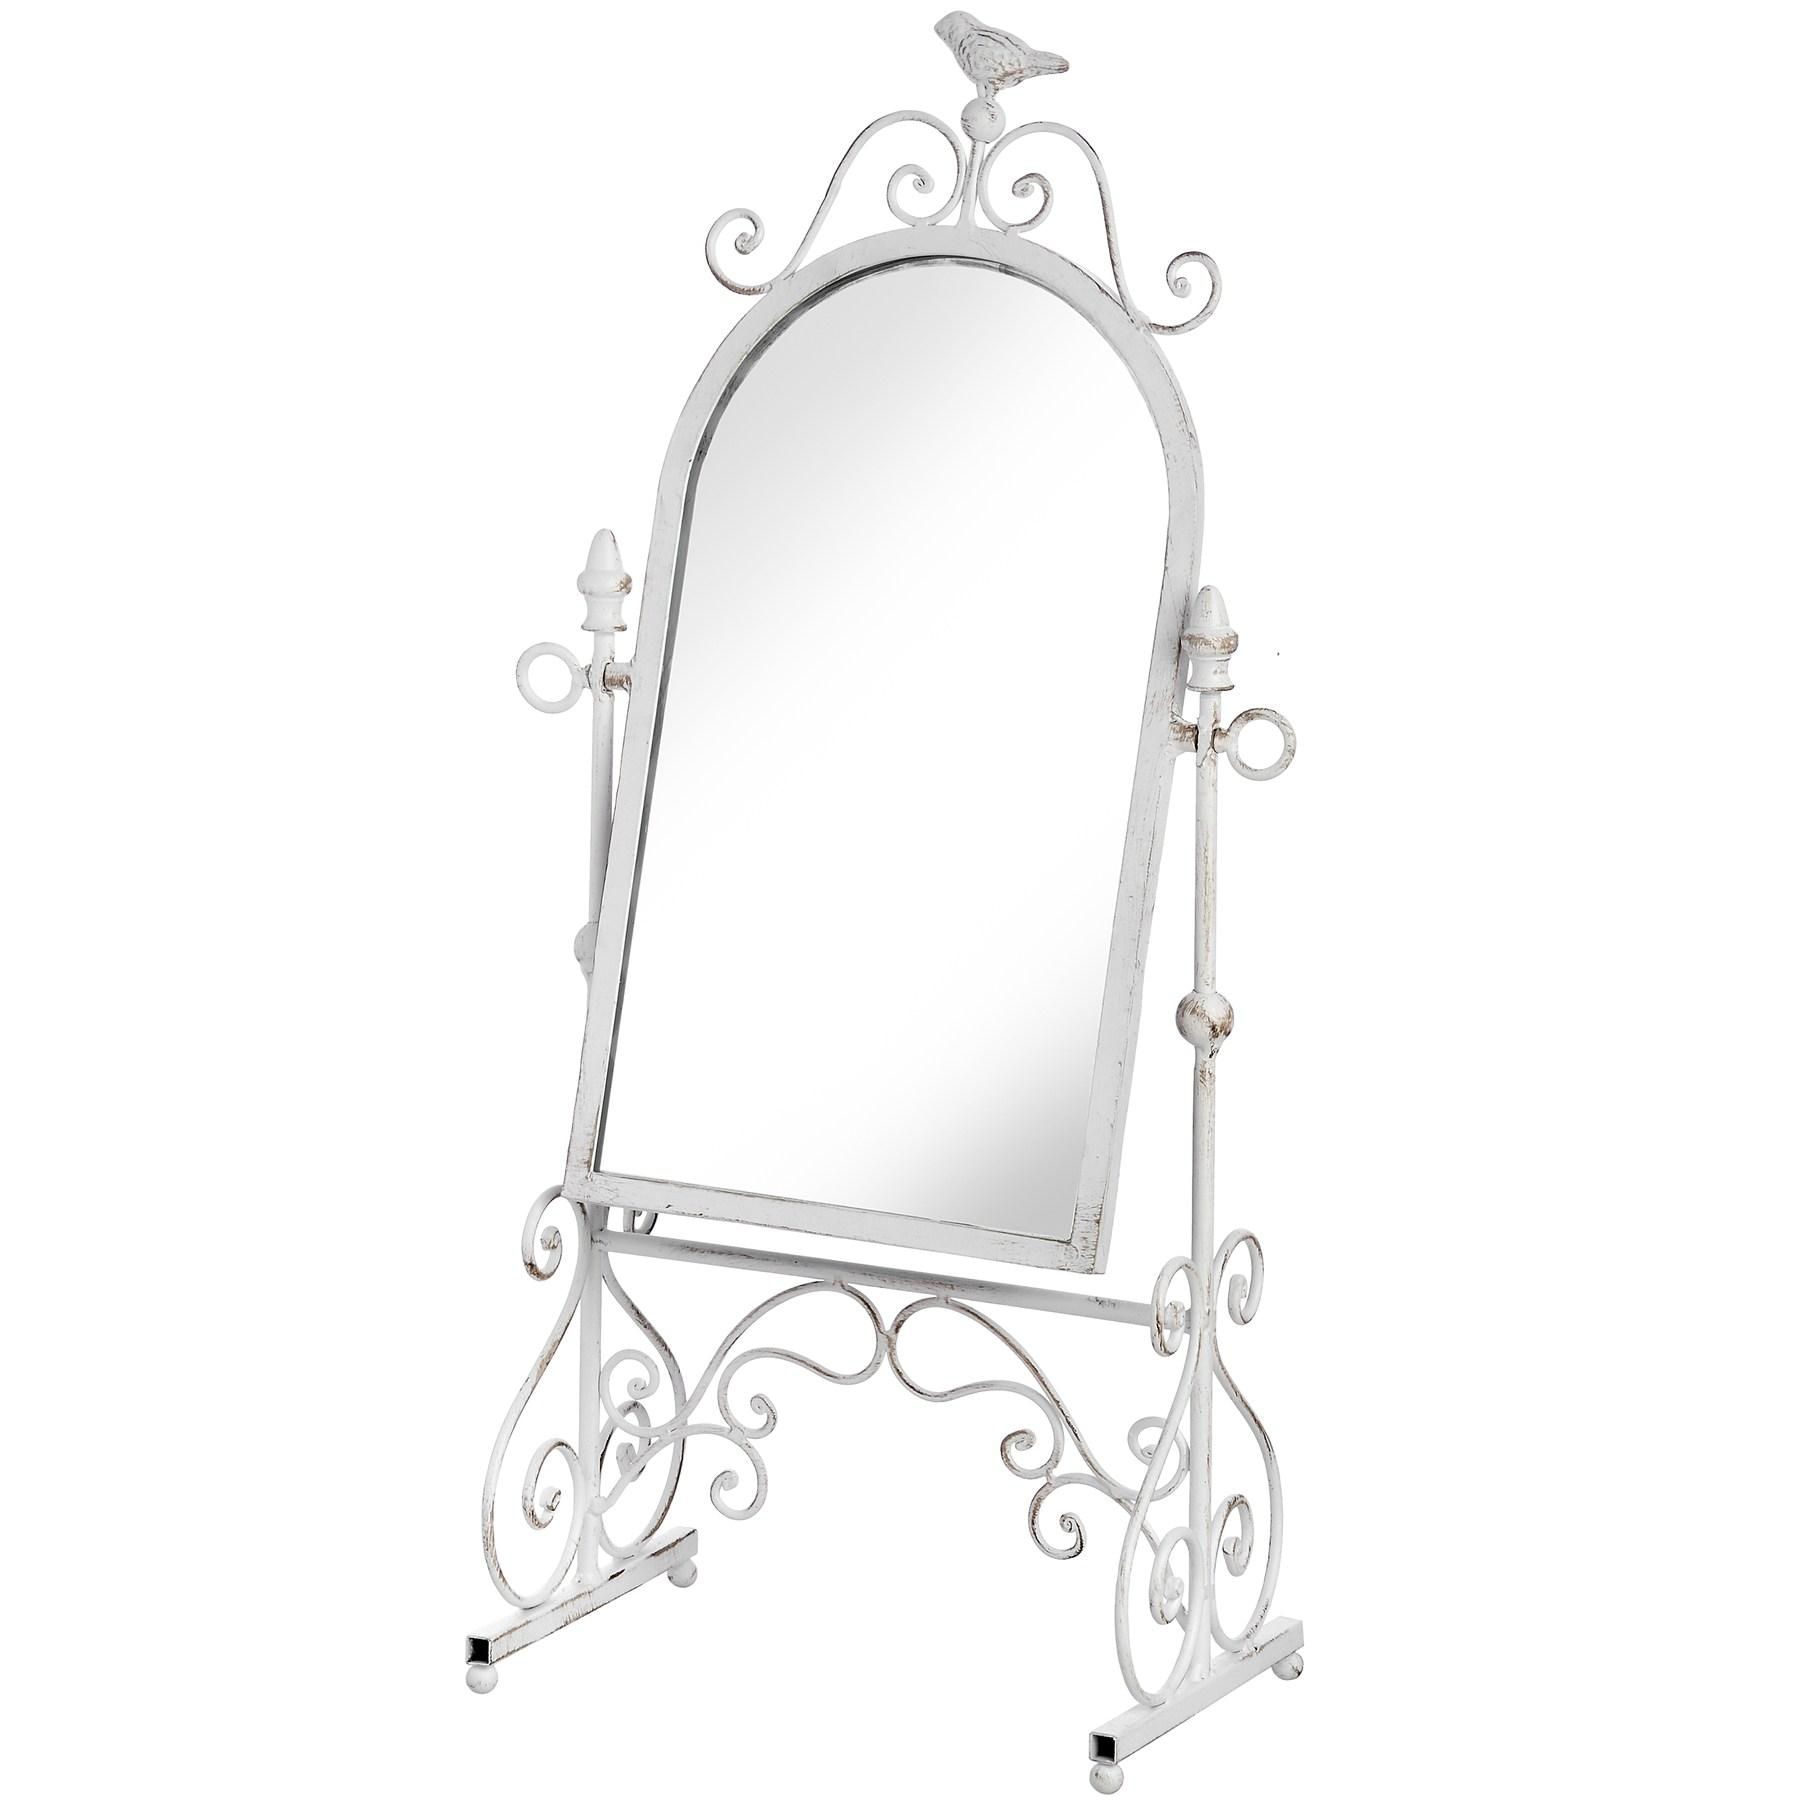 Ornate Floor Standing Mirror From Hill Interiors Inside Standing Table Mirror (Image 13 of 20)